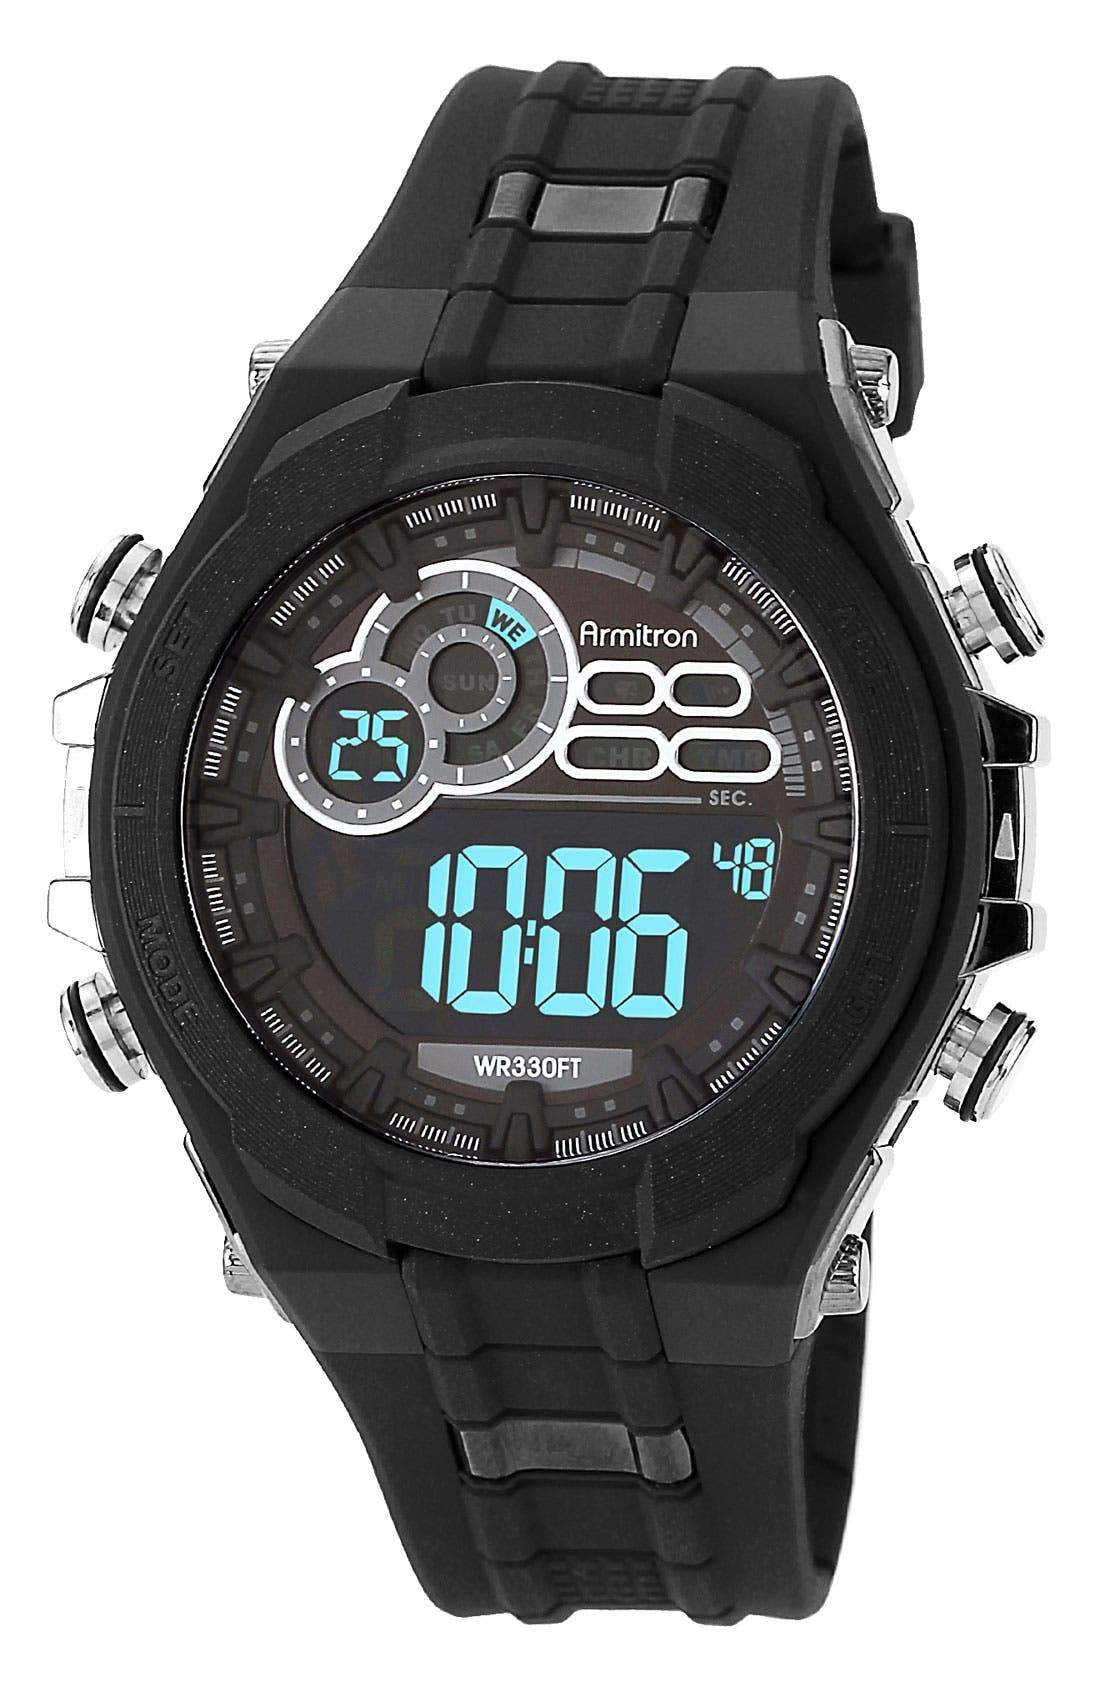 Alternate Image 1 Selected - Armitron Digital Resin Watch, 49mm